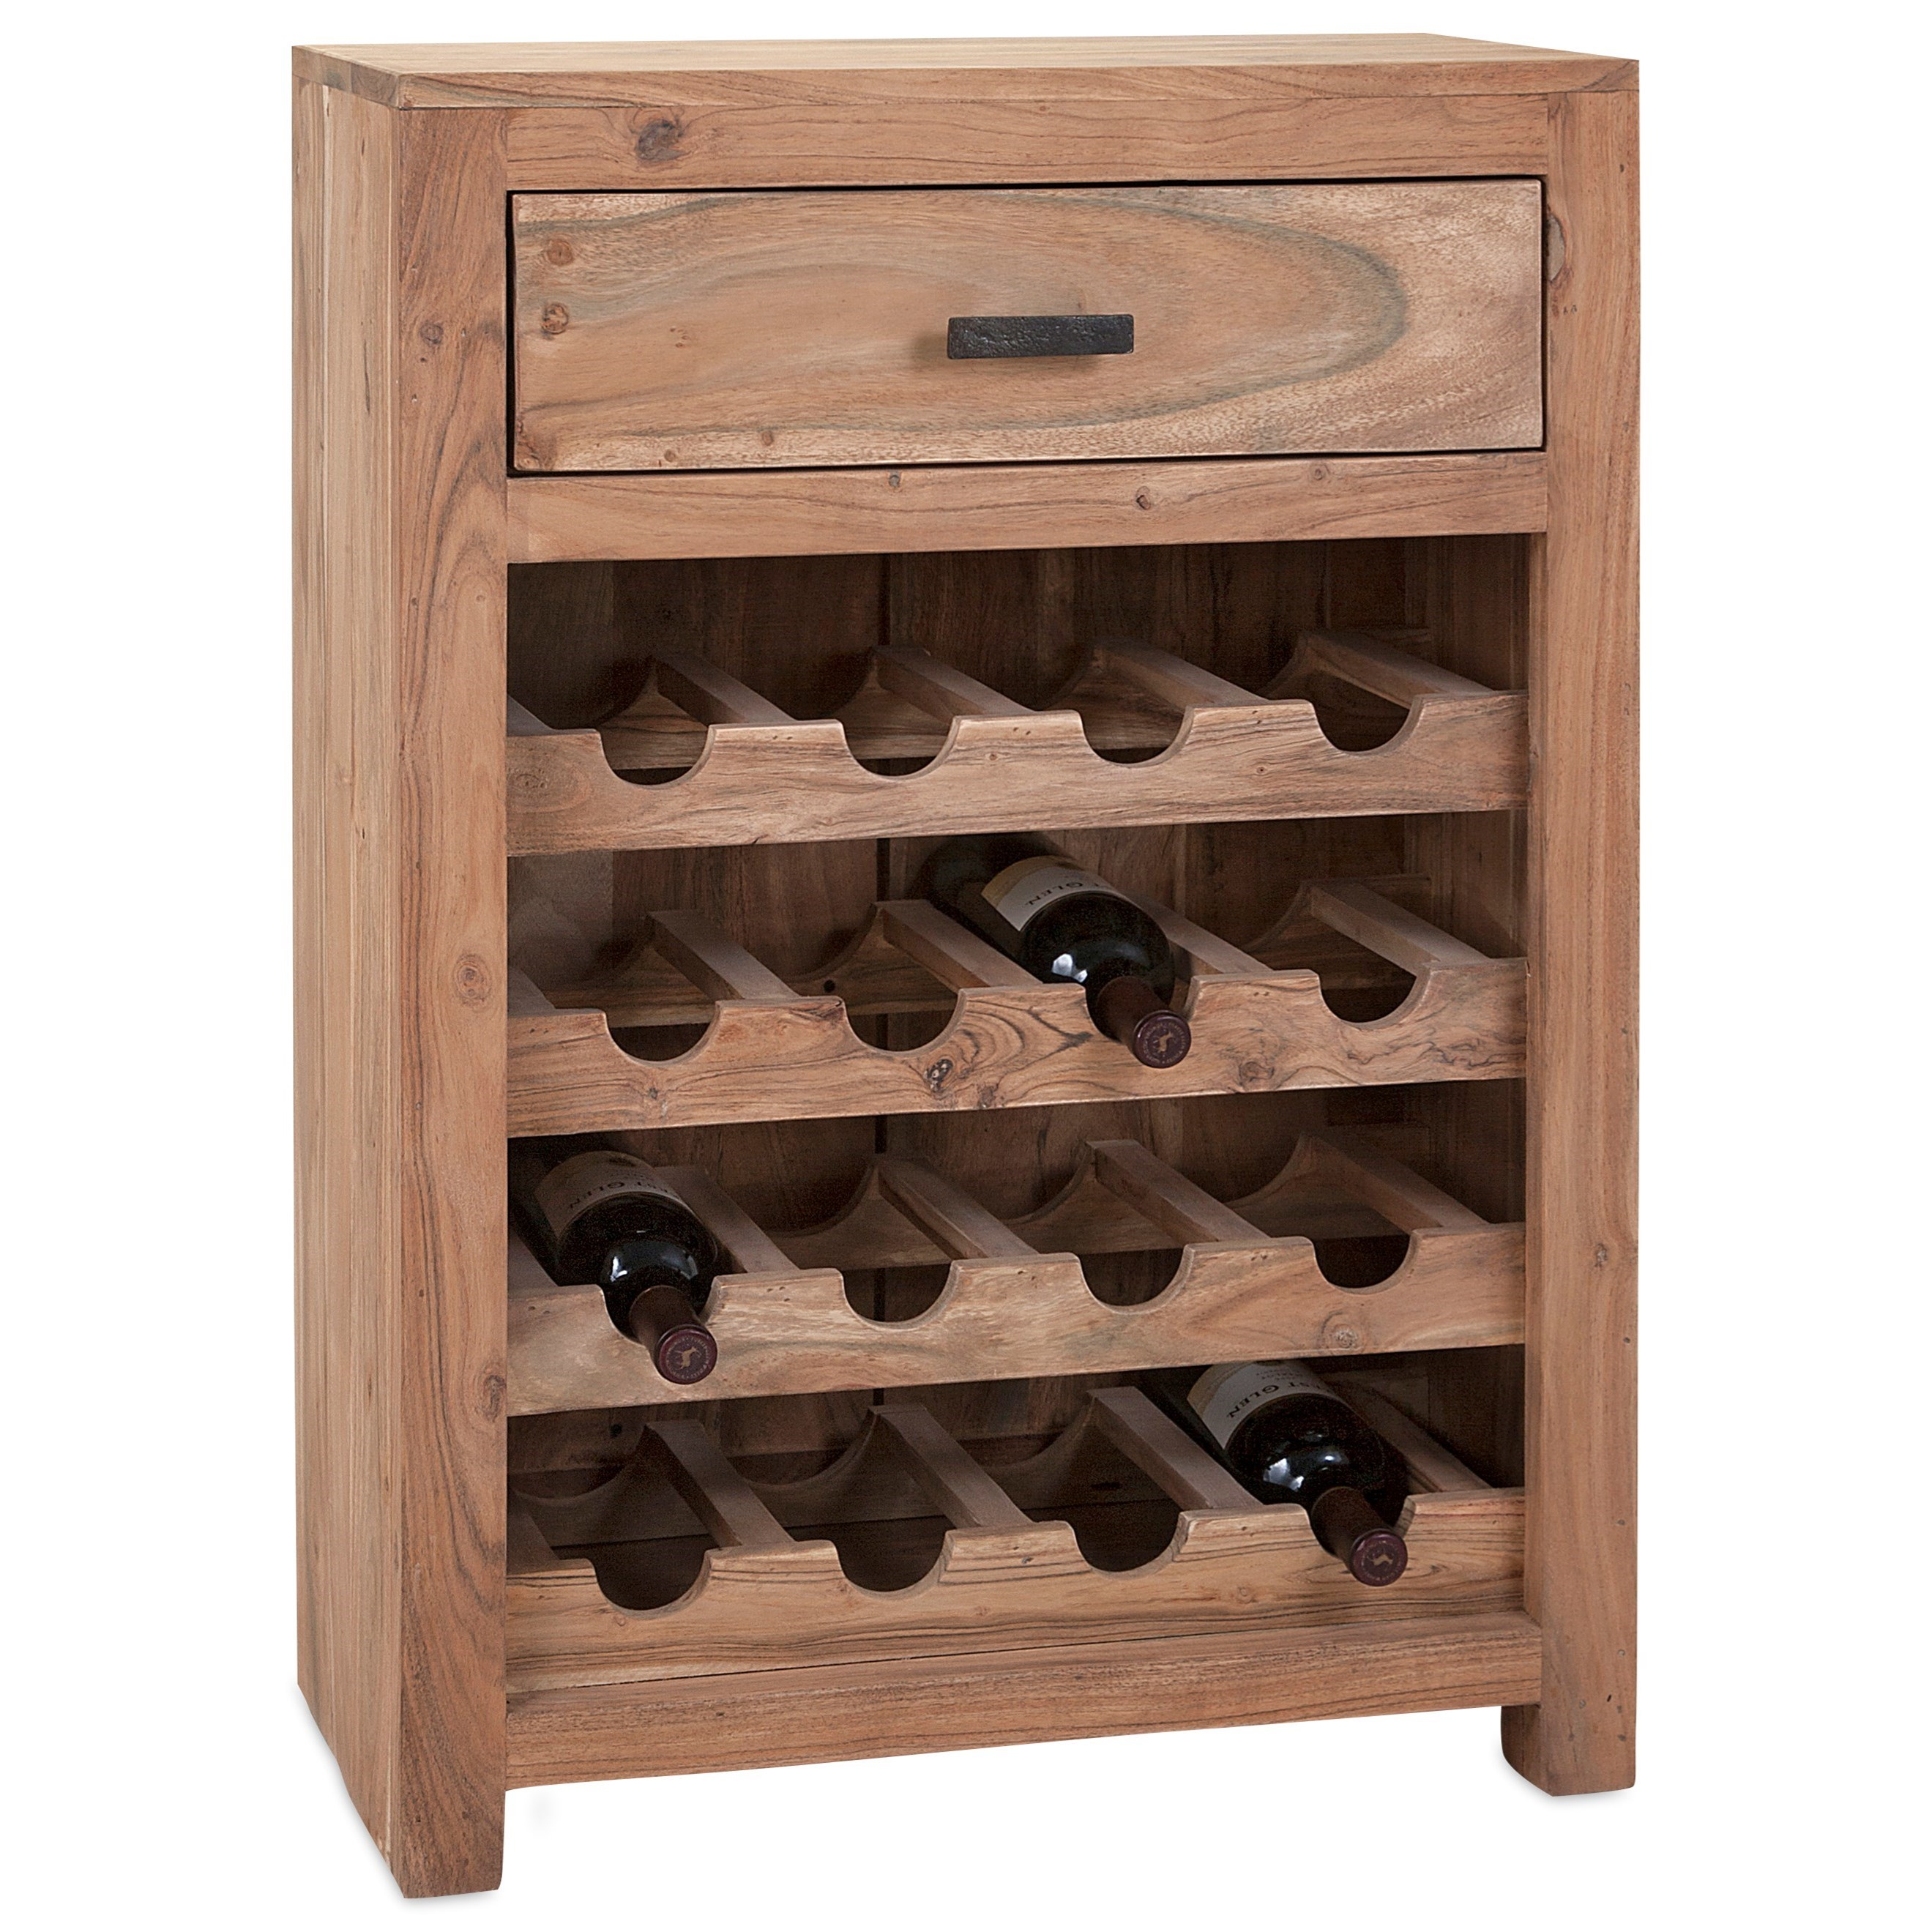 Accent Tables and Cabinets Cade Wine Storage Cabinet by IMAX Worldwide Home at Alison Craig Home Furnishings